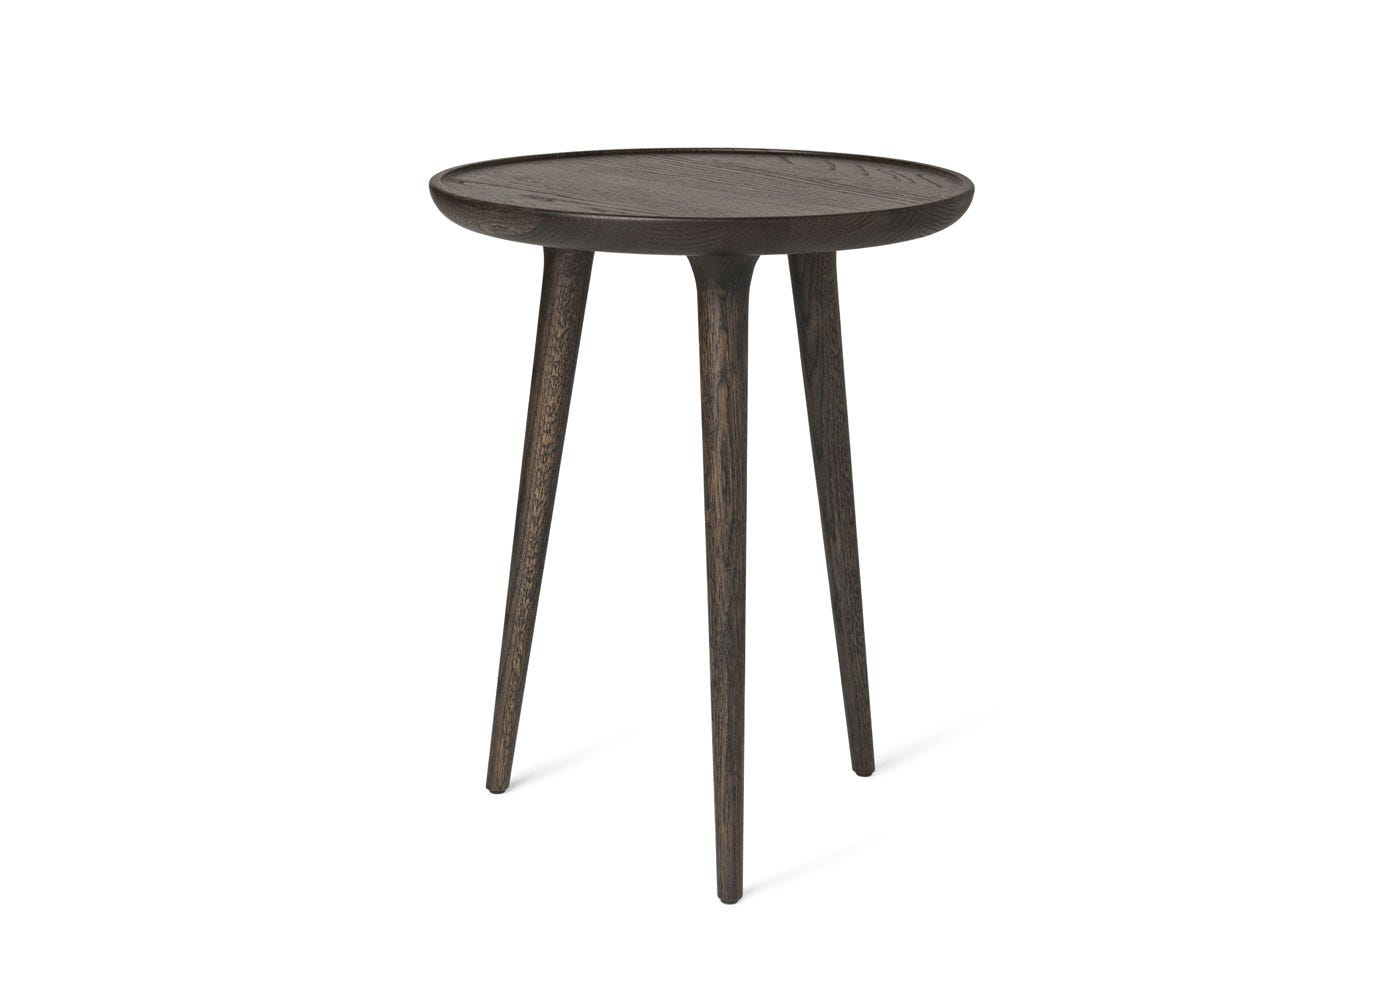 As Shown: Accent Side Table Sirka Grey Stained Oak in Medium